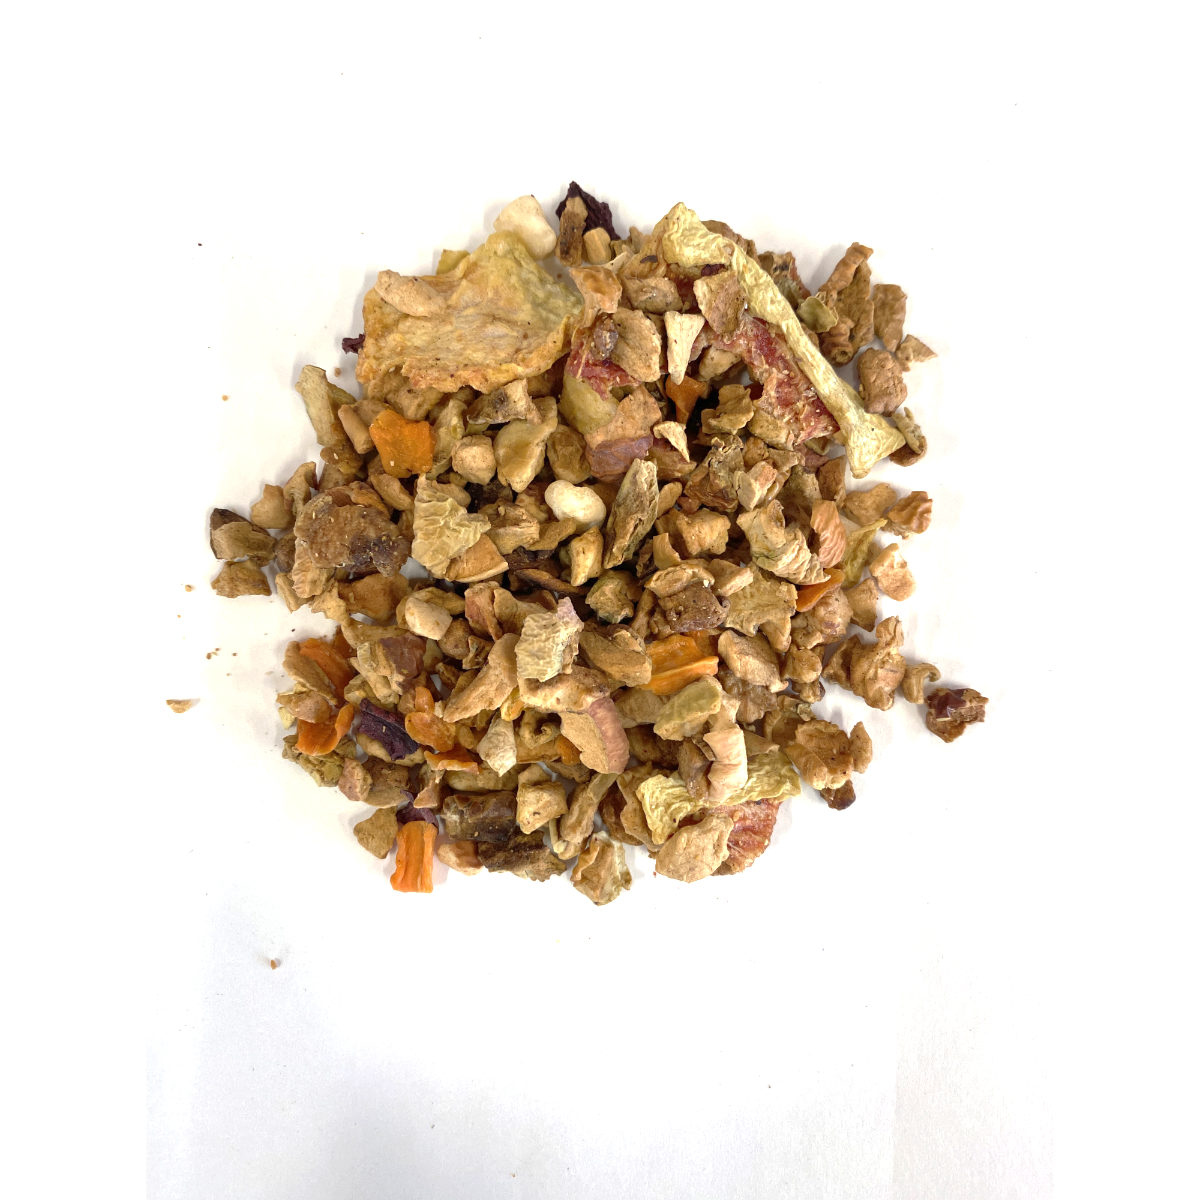 Watermelon Wow Tisane Tea has dried Watermelon Pieces, Apples and Green Melon.  Great kid friendly option with no caffeine!